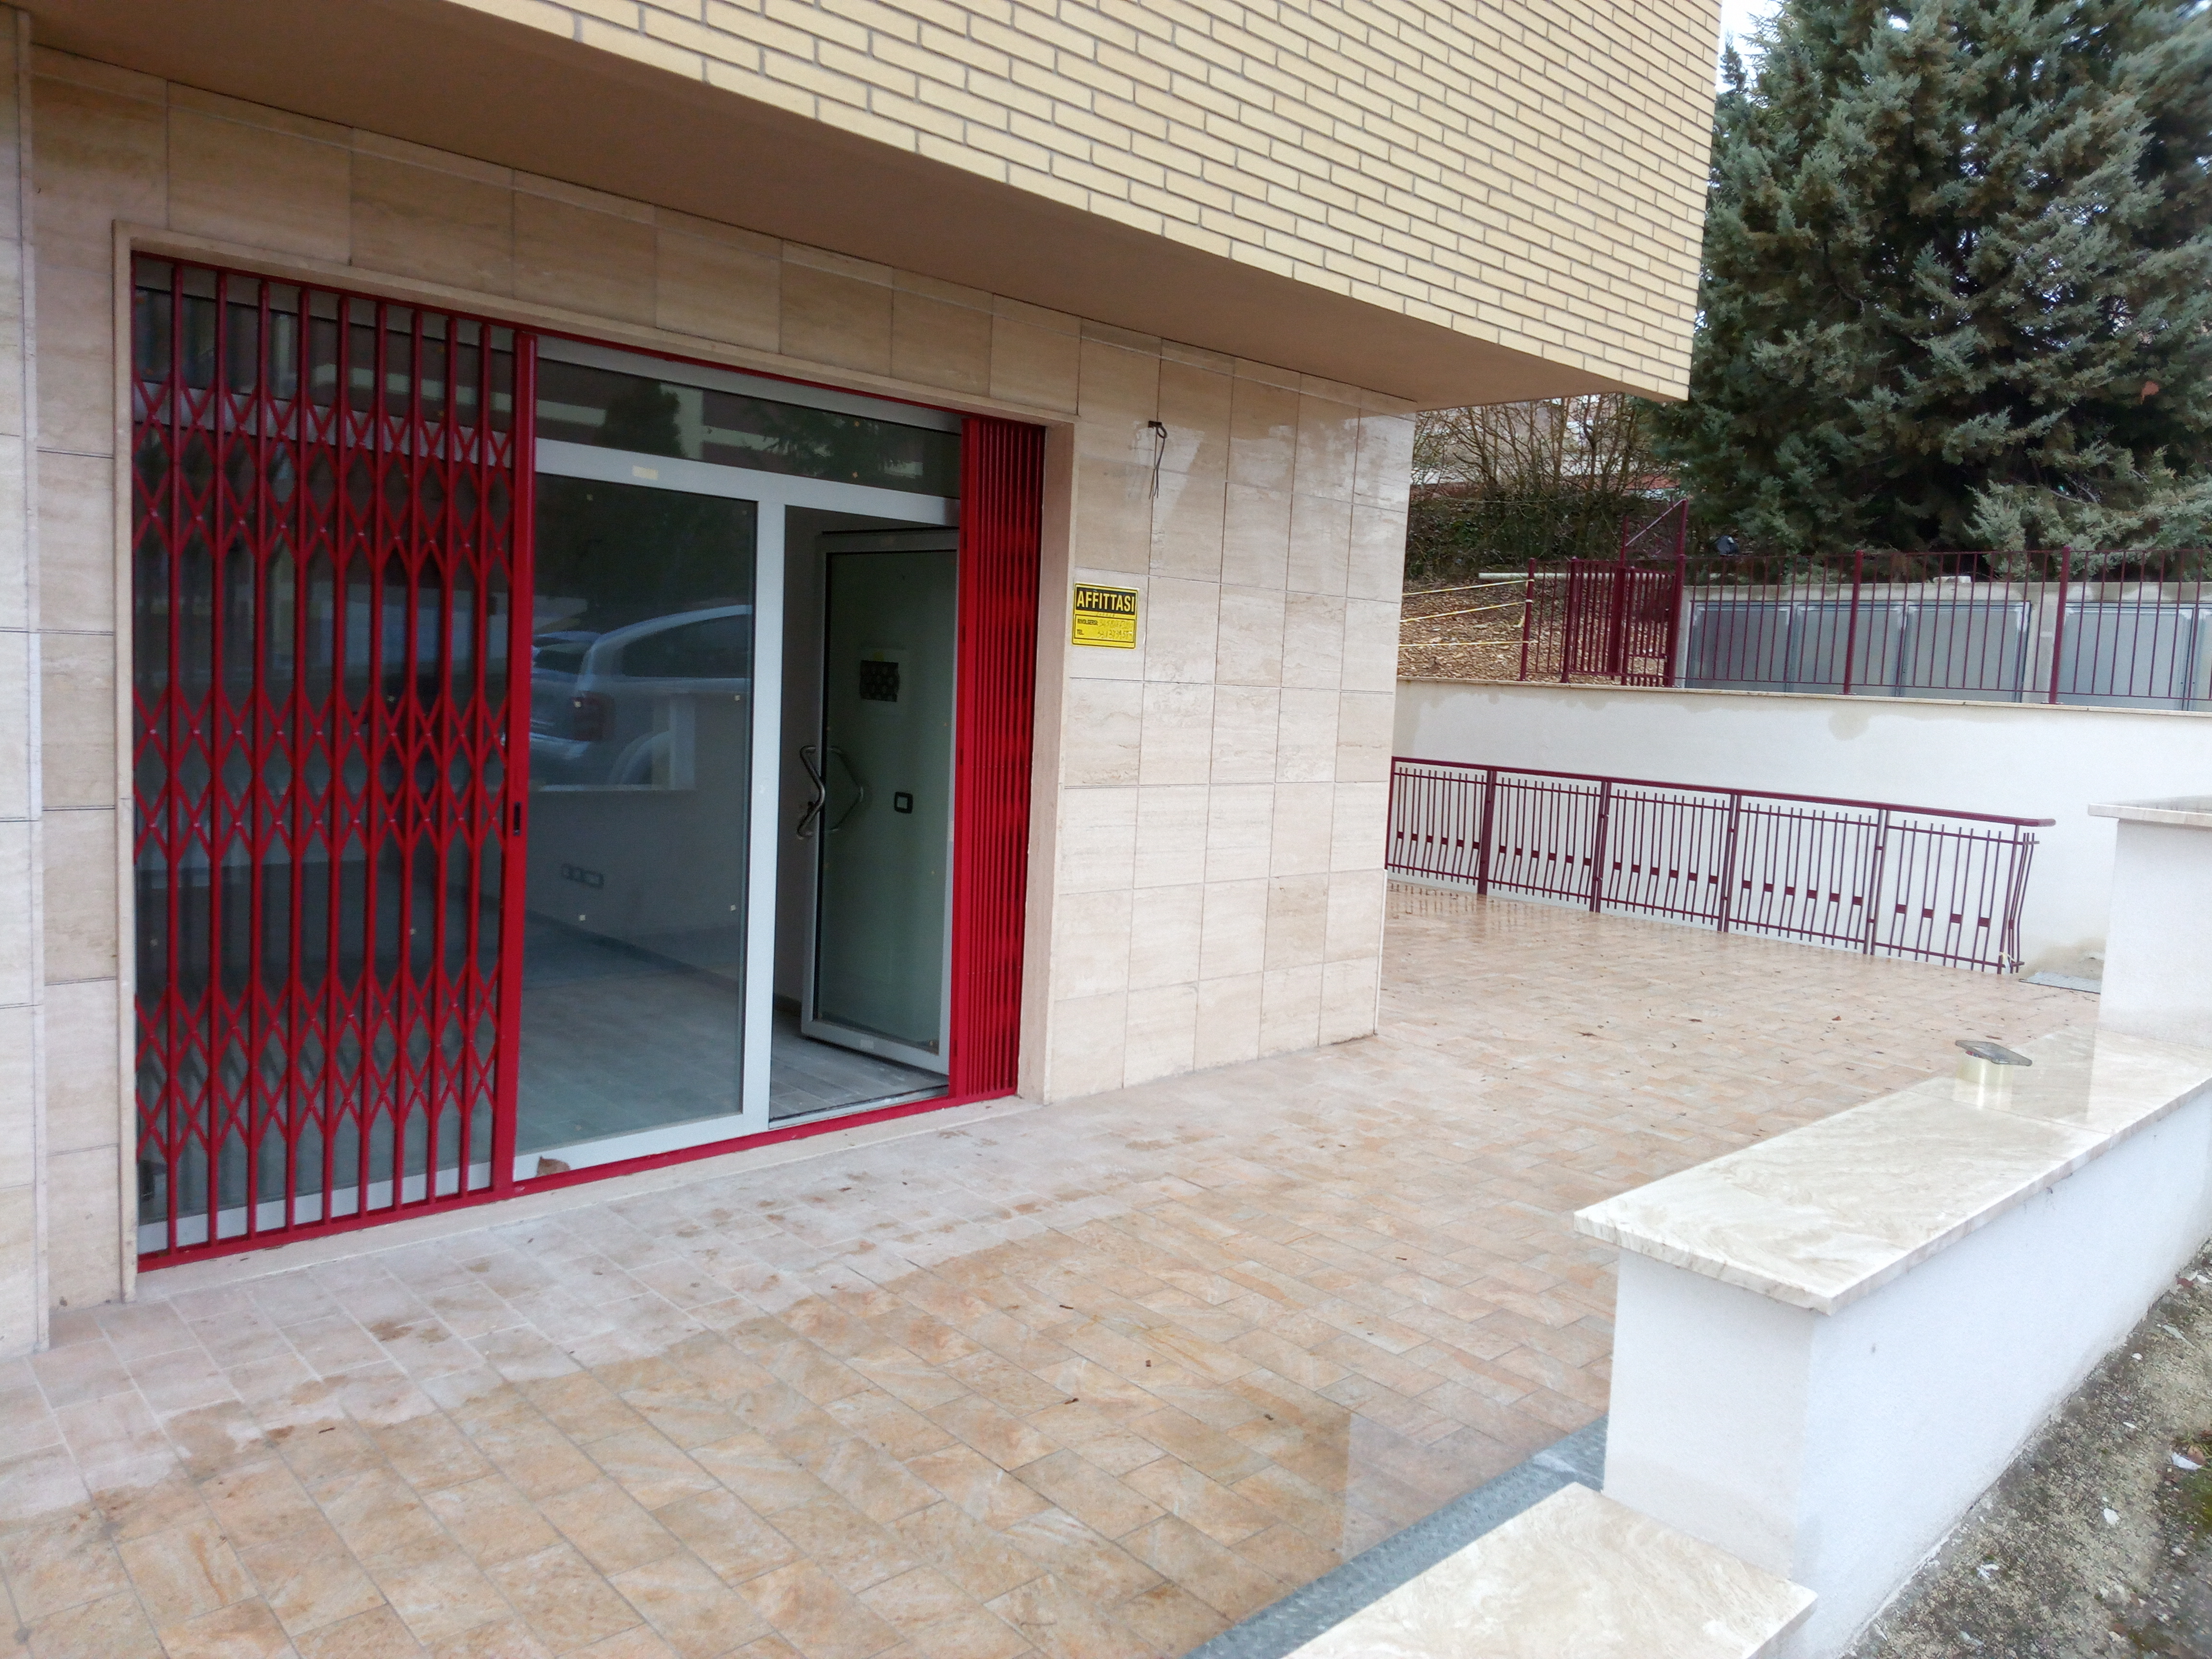 AFFITTA LOCALE COMMERCIALE – TORRIONE